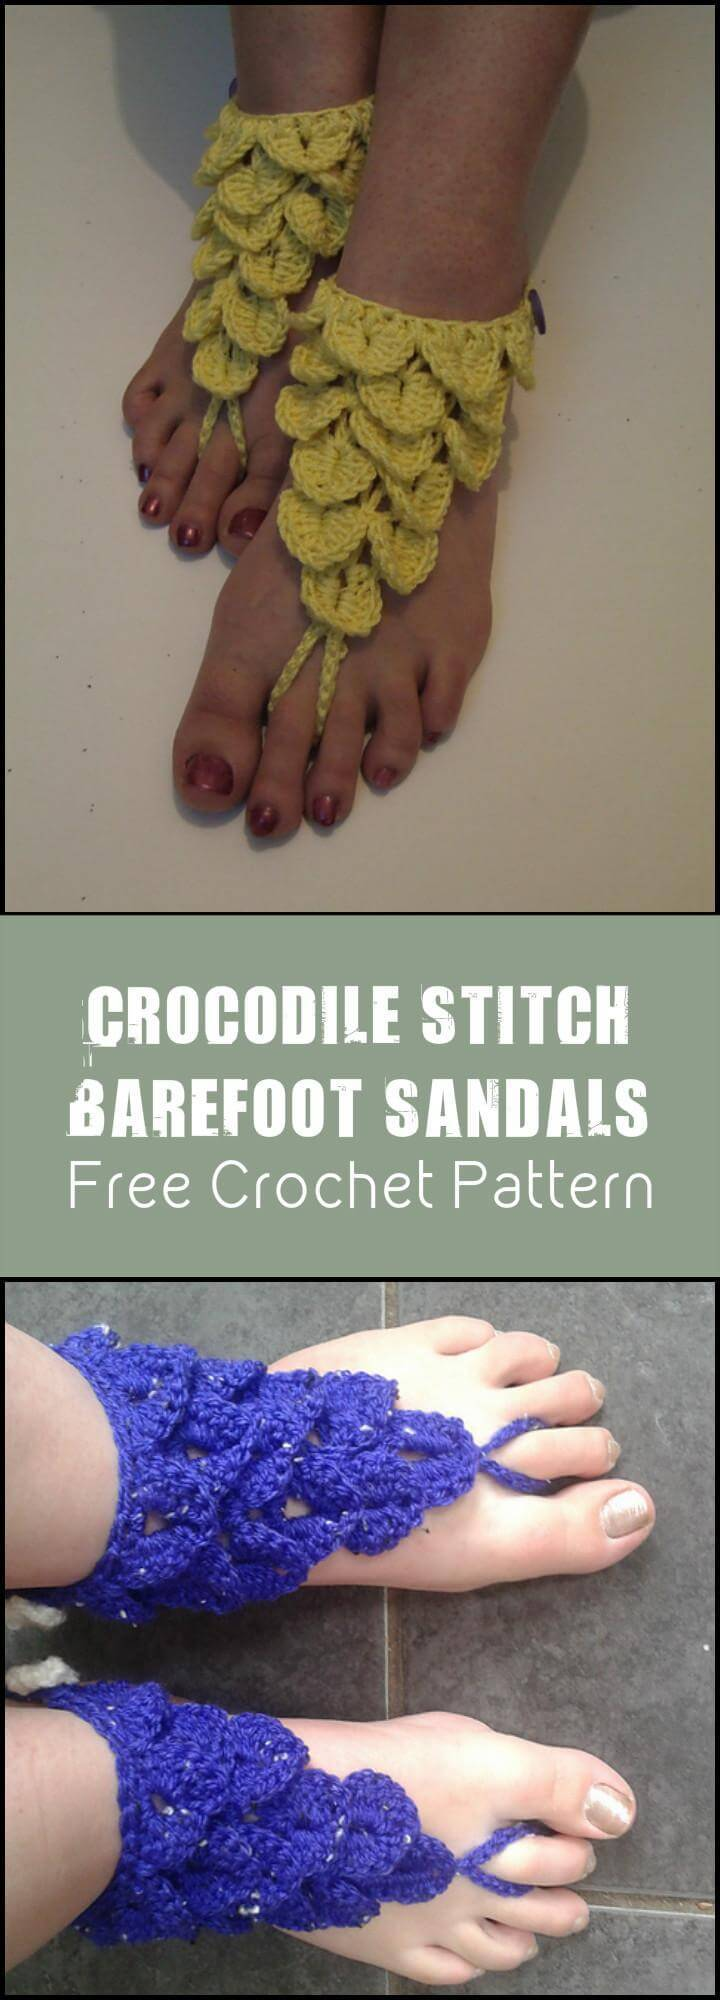 Crocodile Stitch Barefoot Sandals Free Crochet Pattern